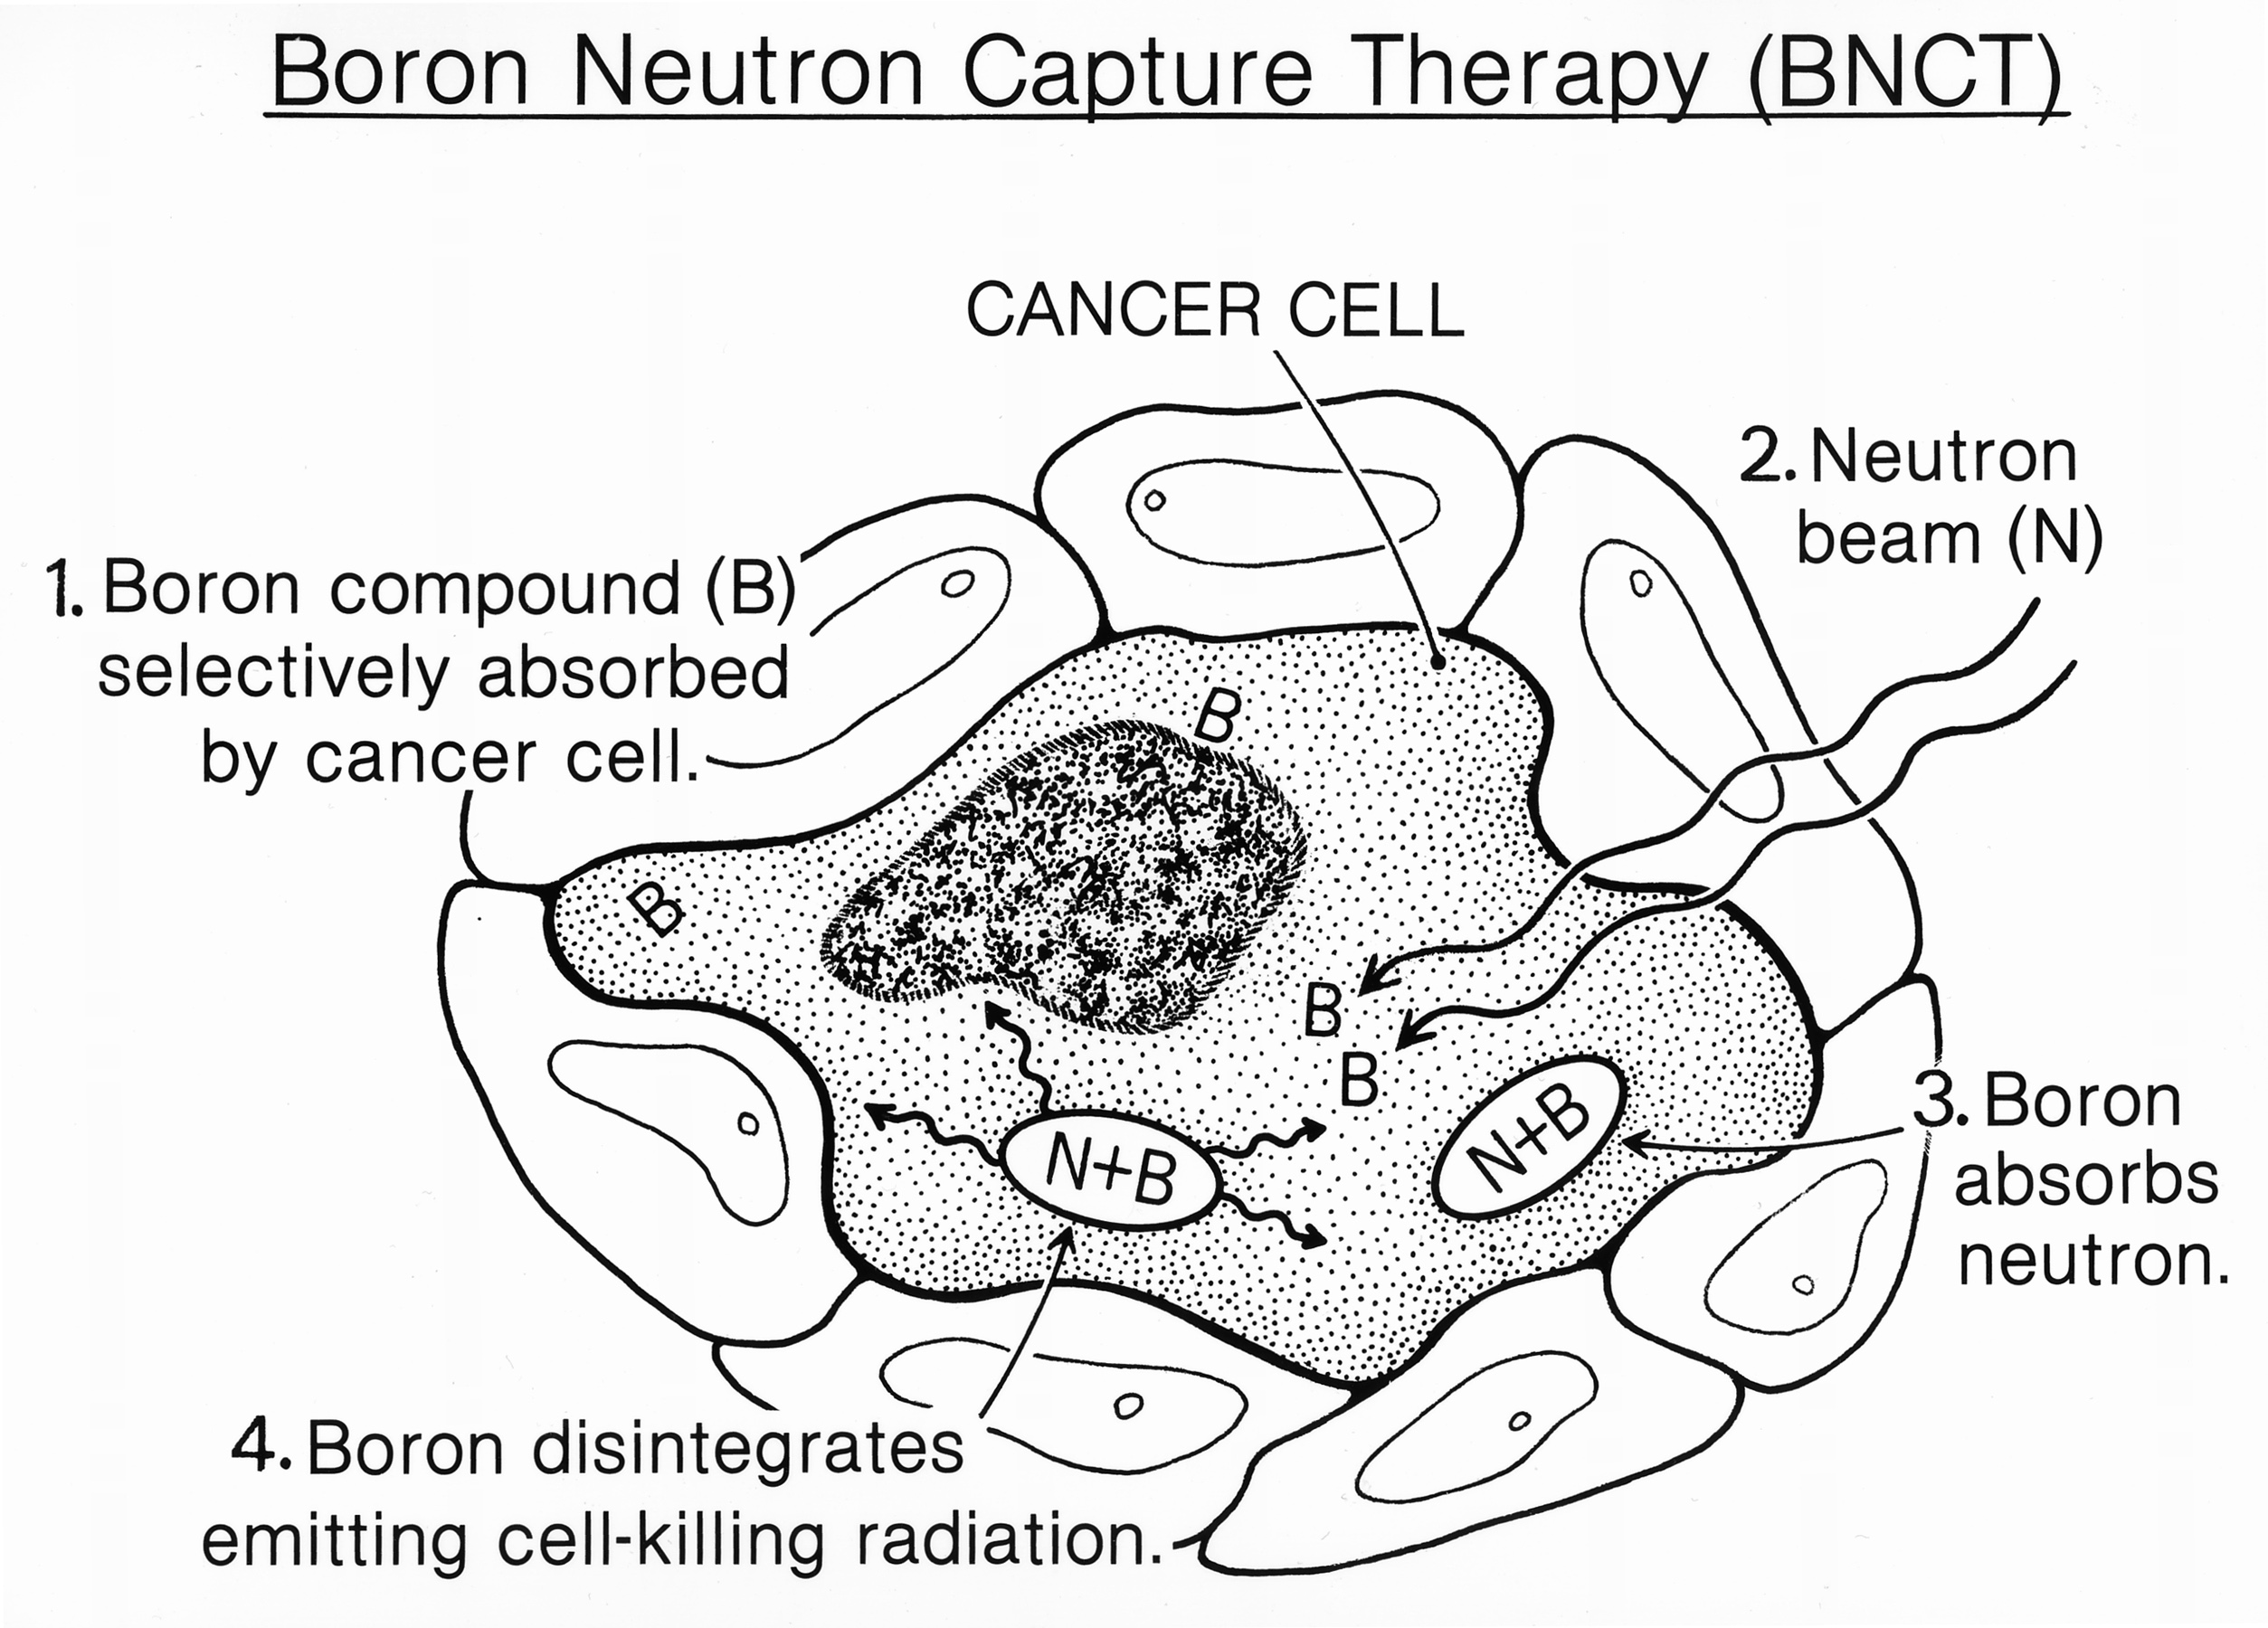 Neutron capture